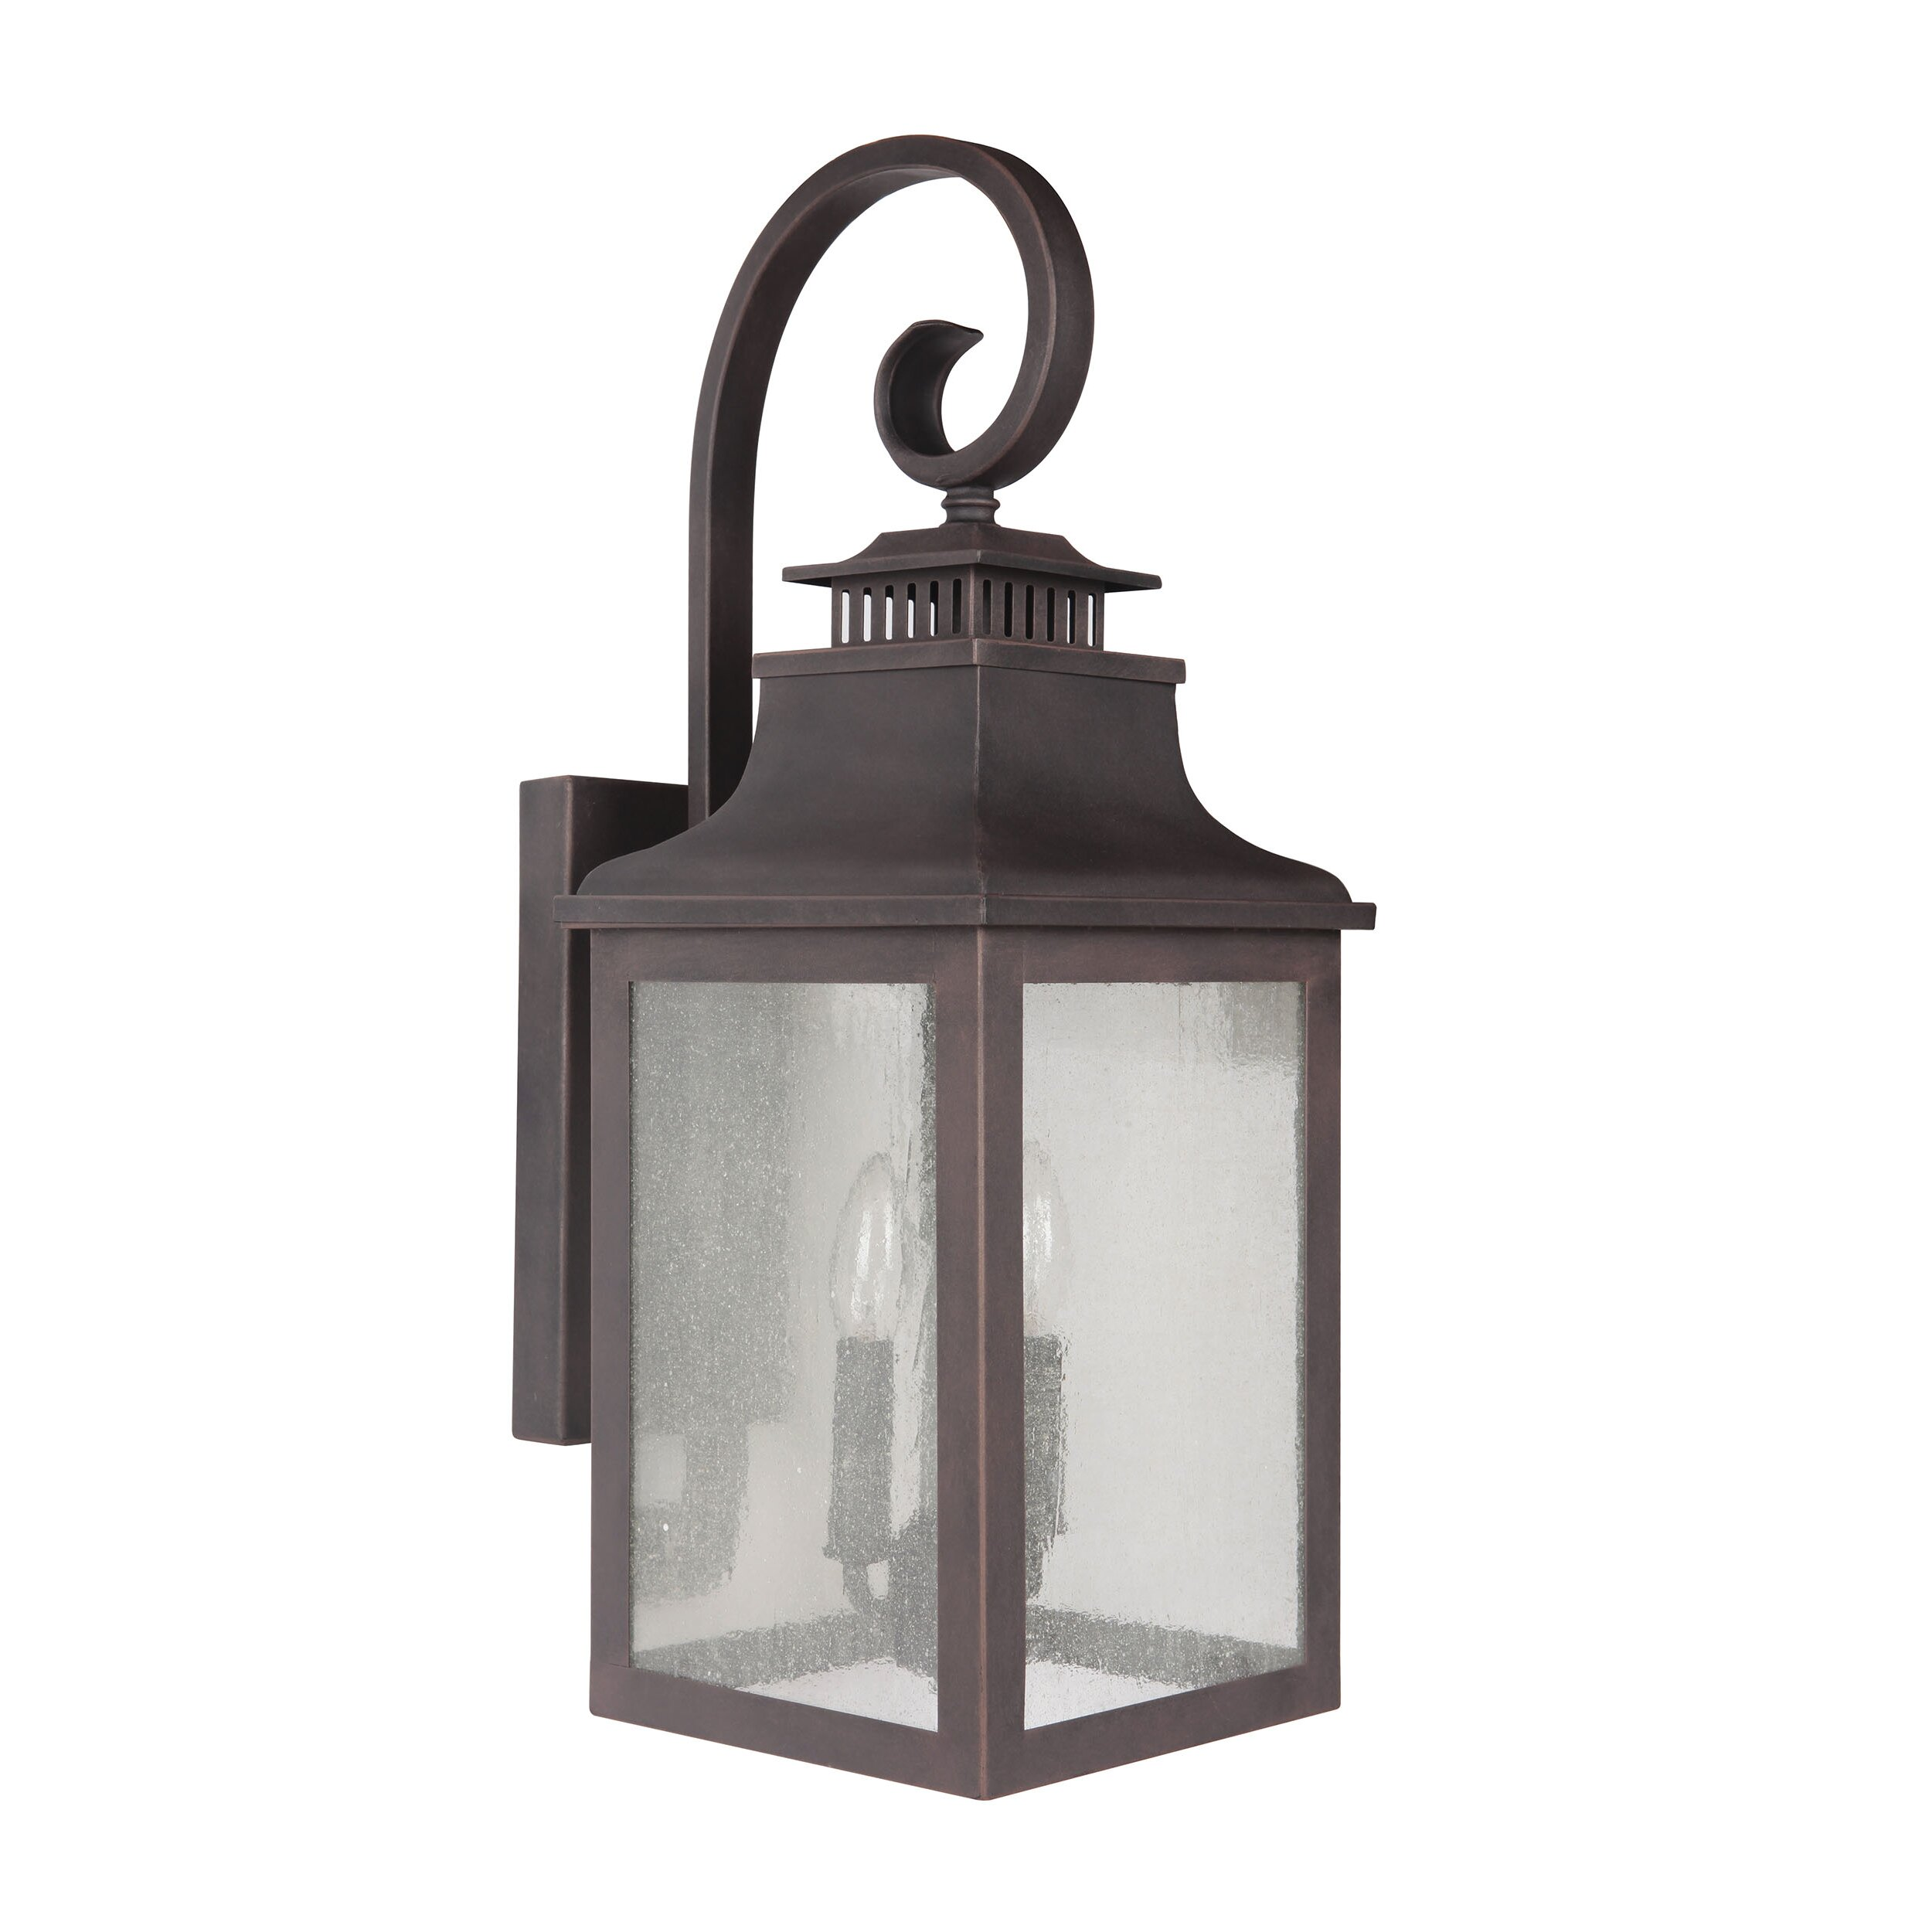 Y Decor Morgan 2 Light Outdoor Wall Lantern & Reviews Wayfair